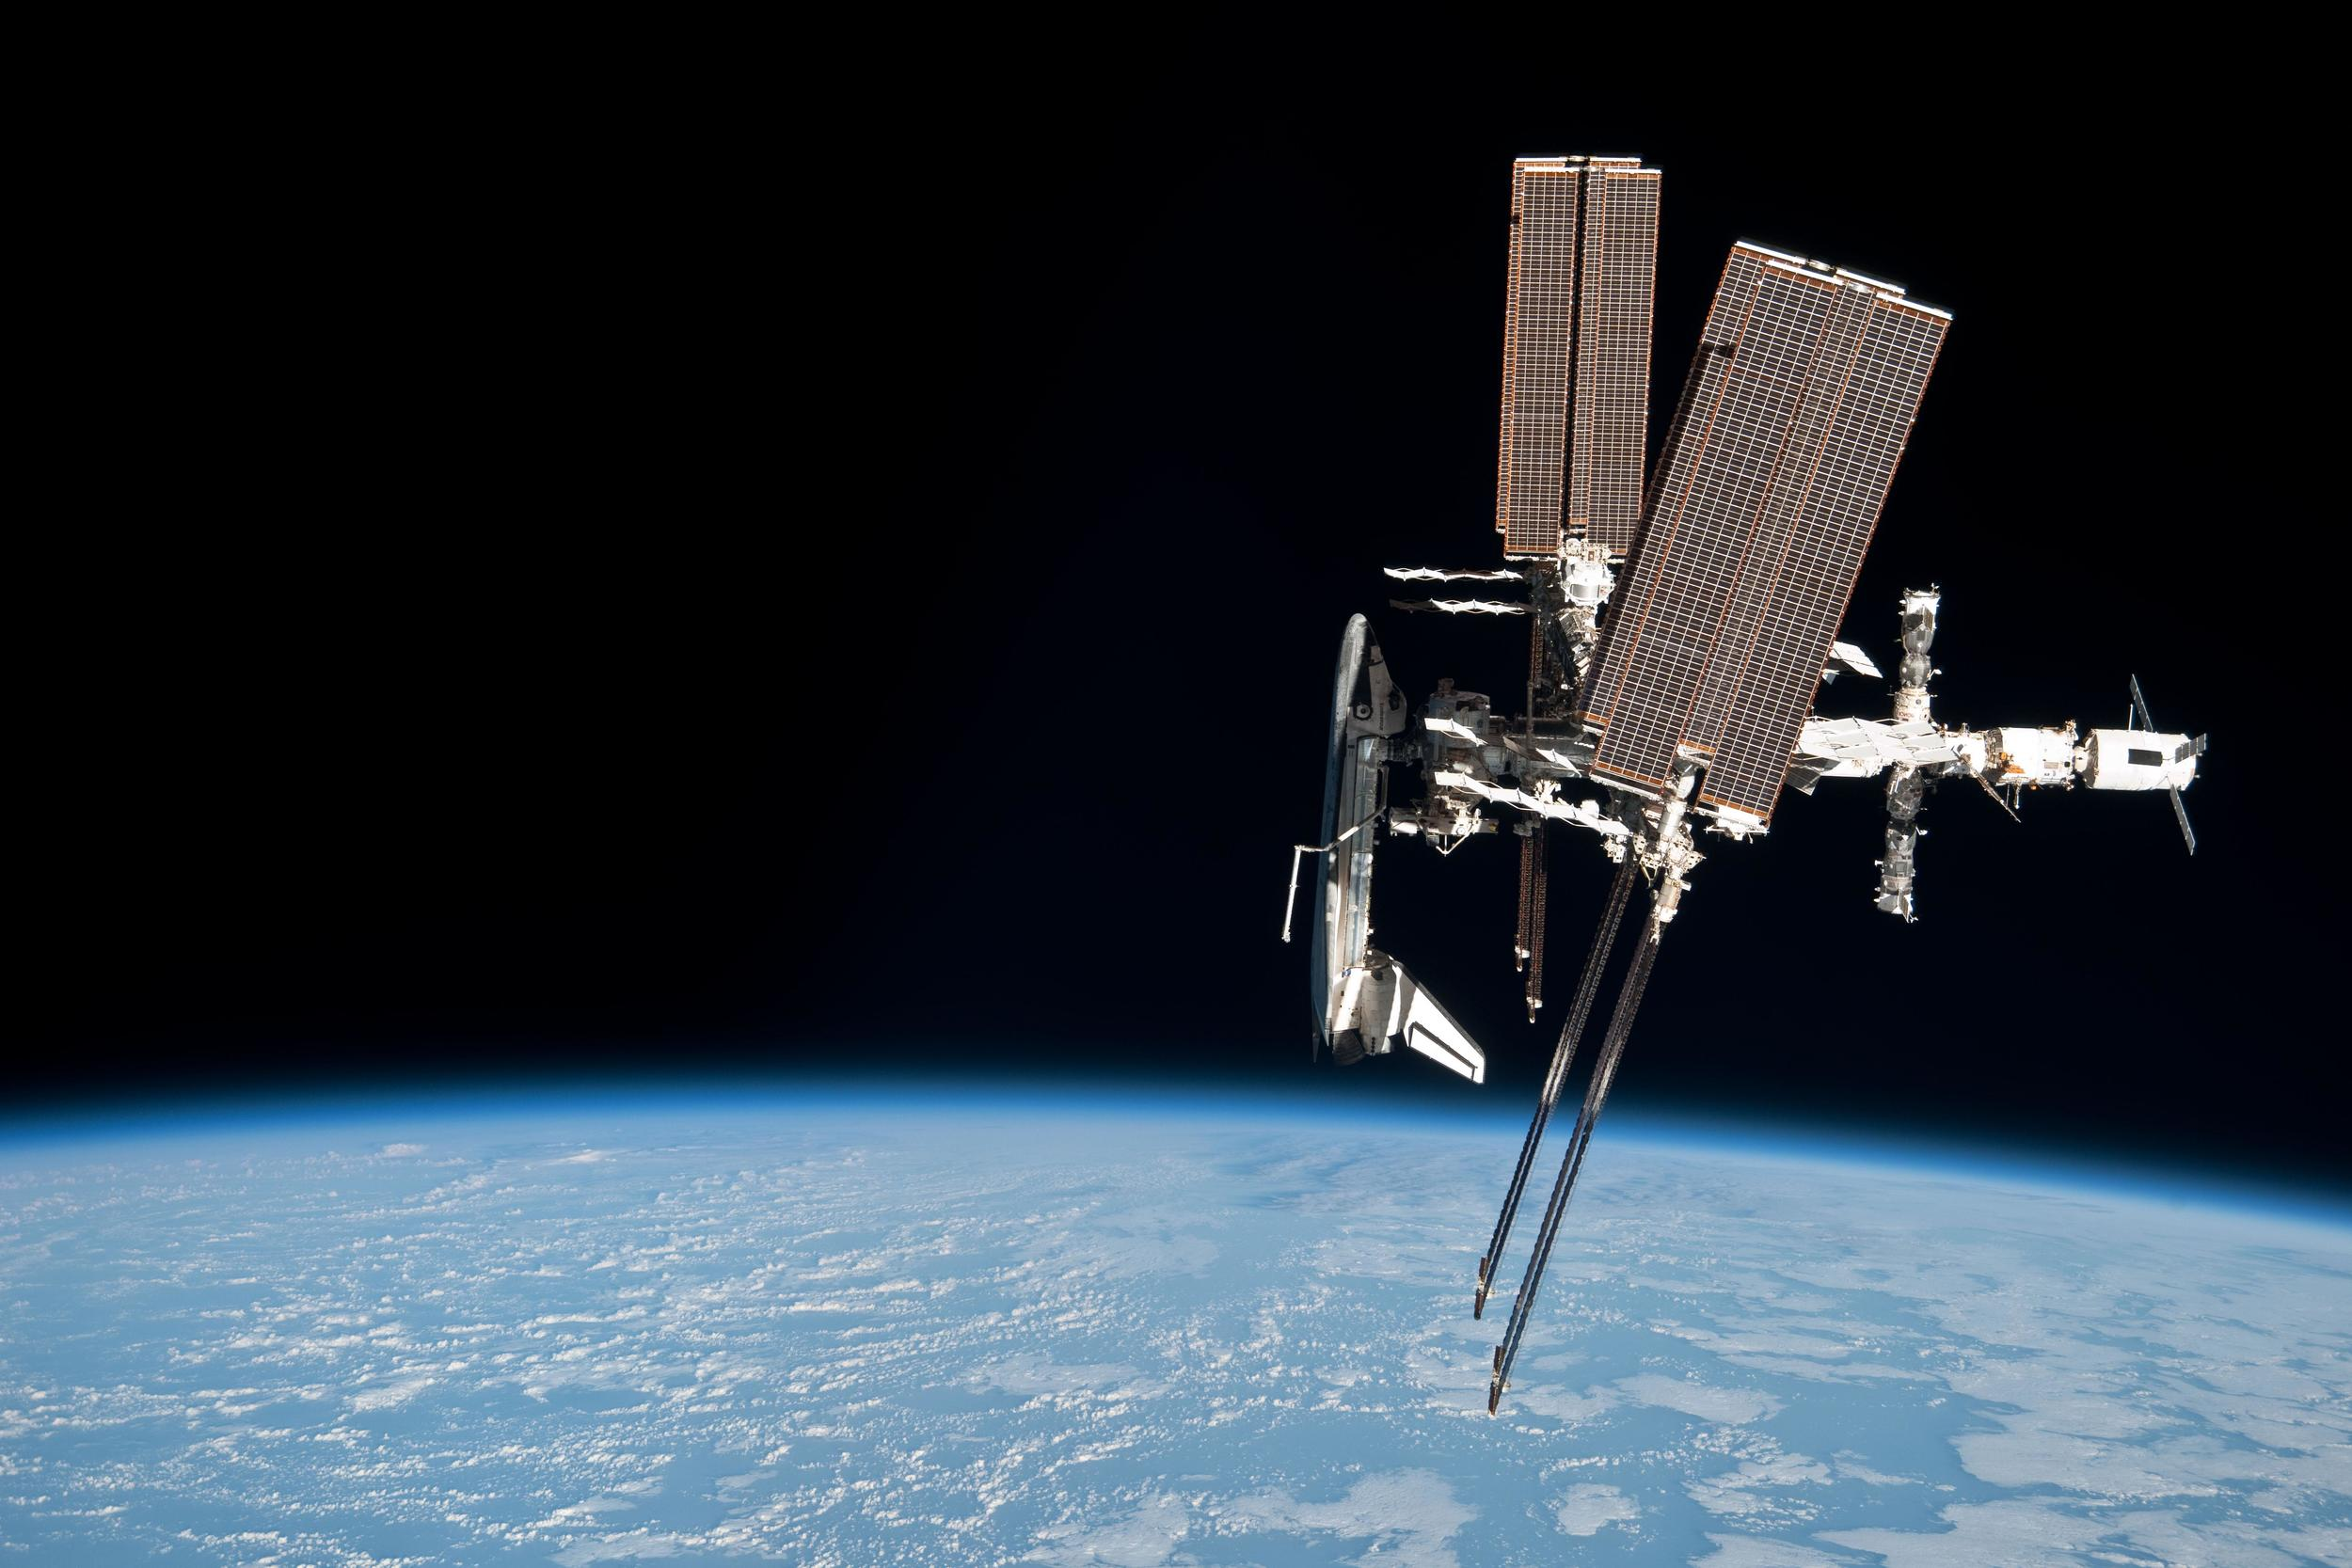 The space shuttle  Endeavour  is seen docked with the ISS by a departing Soyuz crew. Photo Credit: NASA